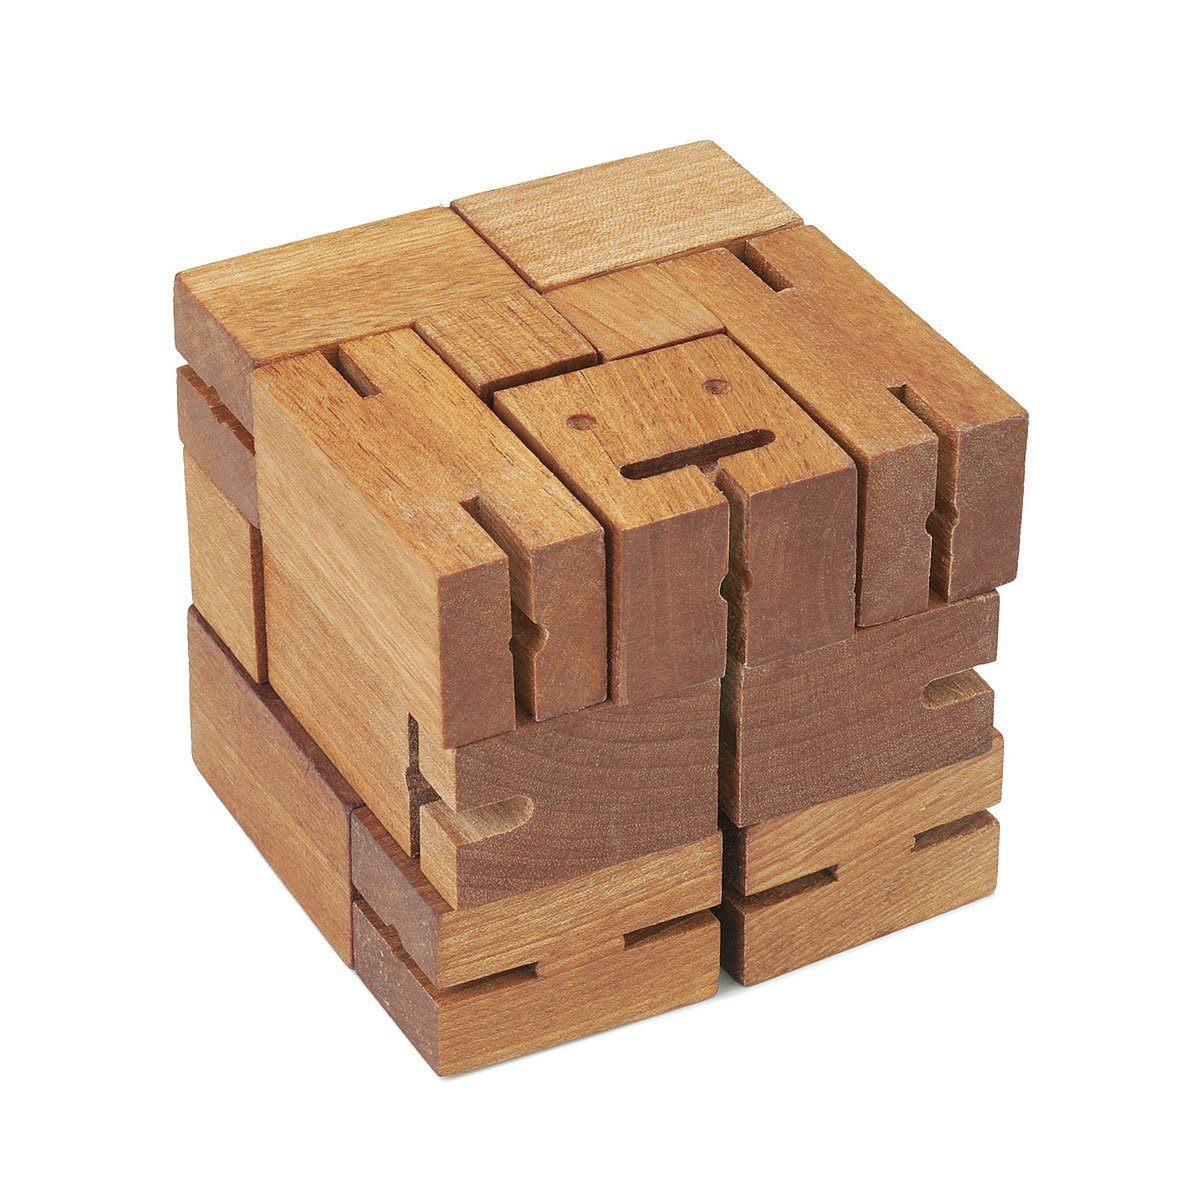 Cubebot Puzzle Wooden Robot Toy Areaware Uncommongoods